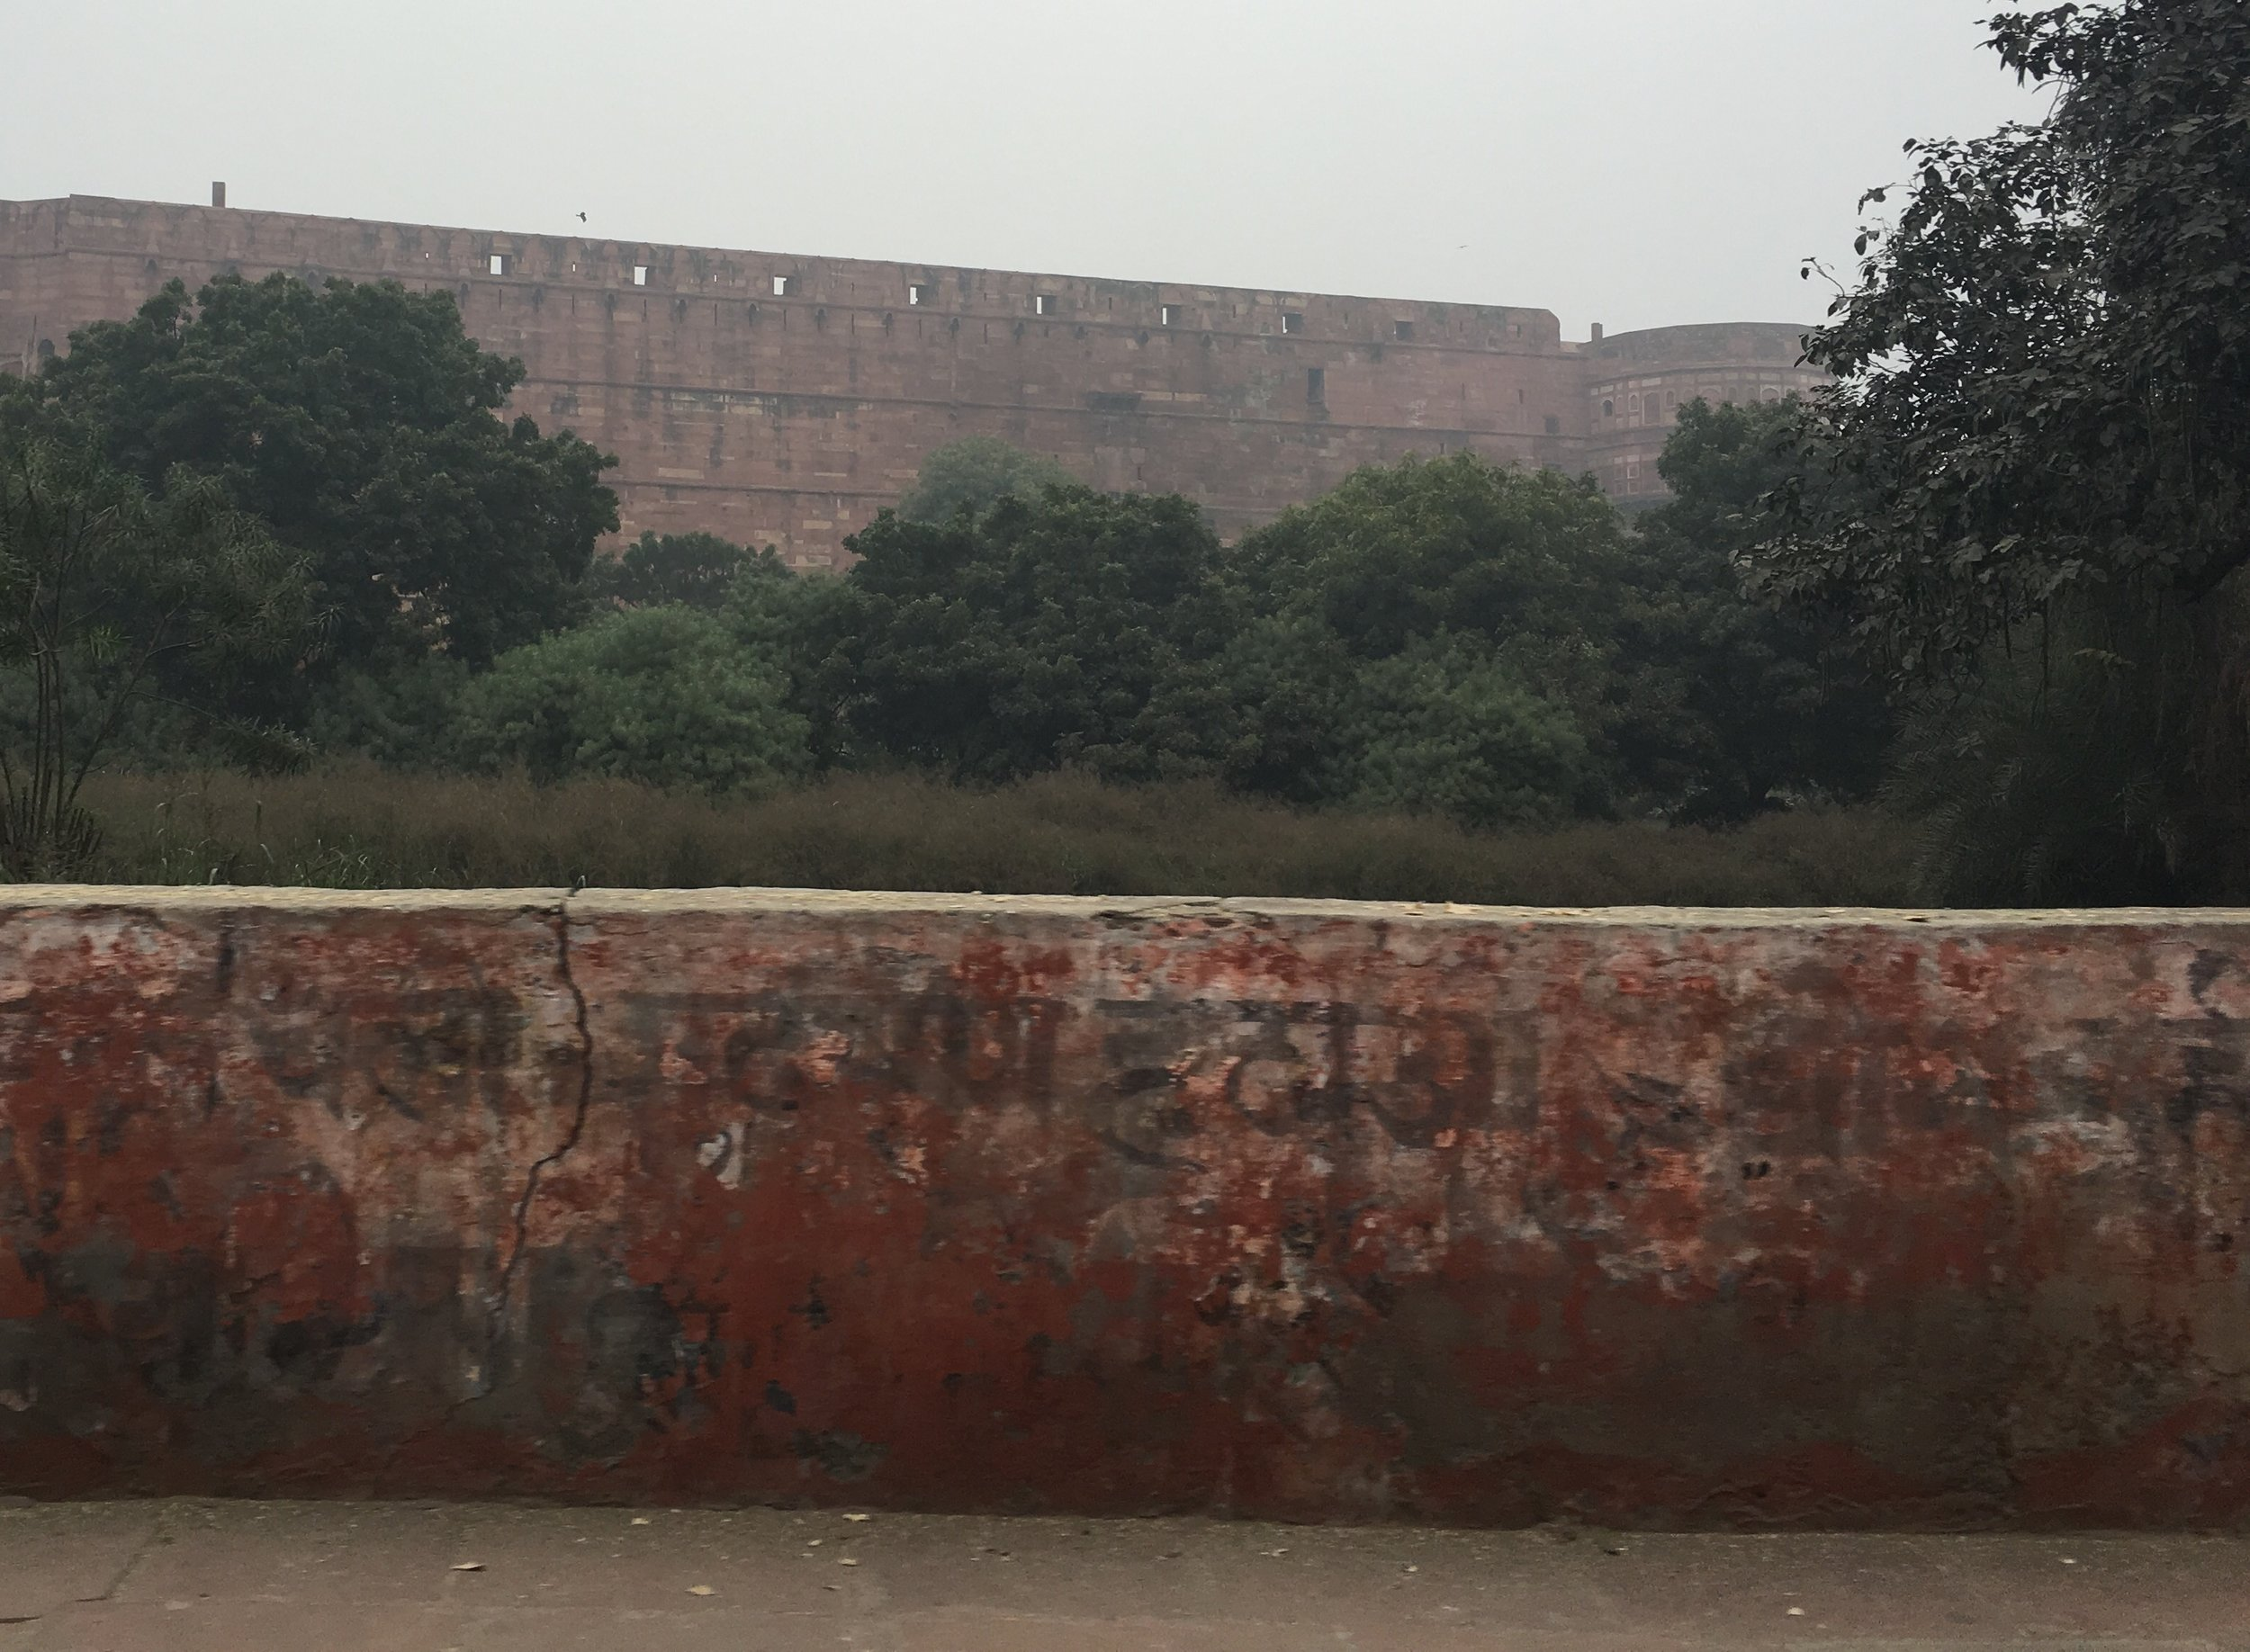 Agra Fort taken from ouside